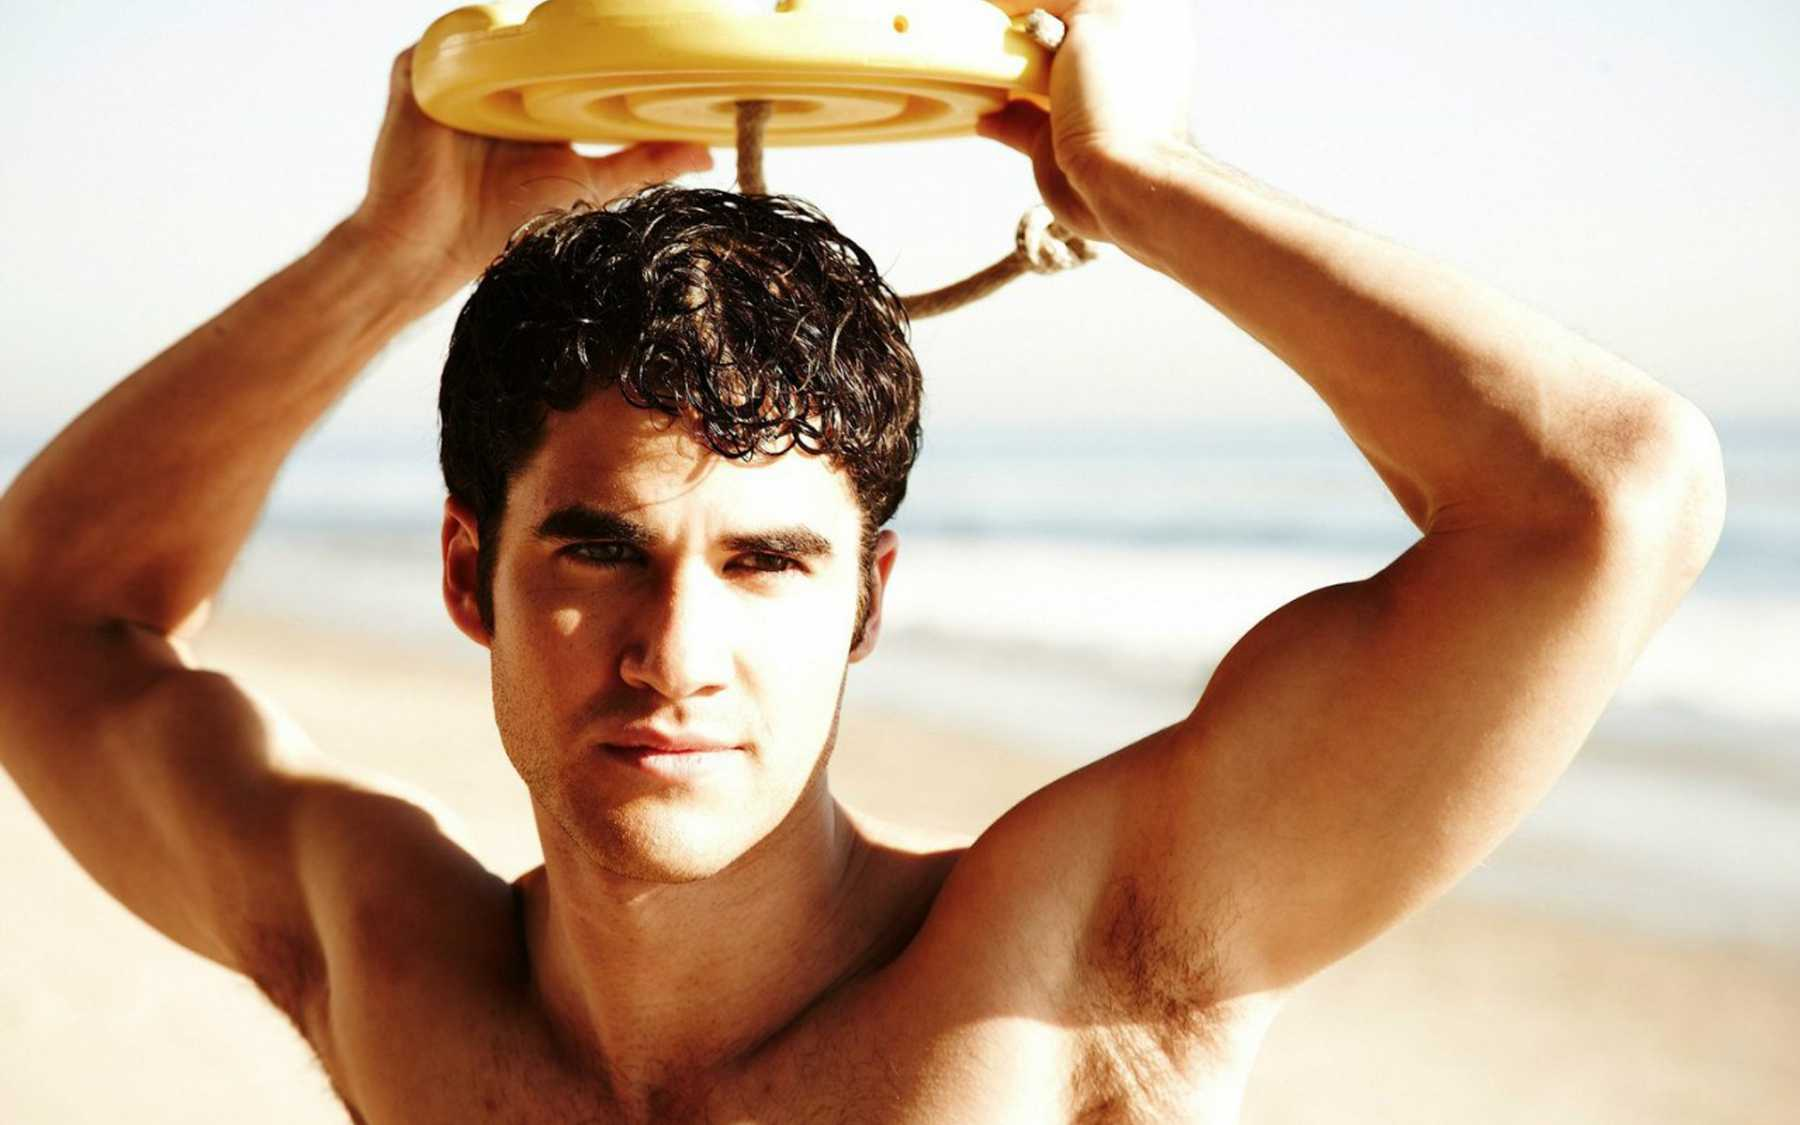 PopWrapped Celebrates Darren Criss: He's 27, He's On A Hit Show And He's Just Getting Started